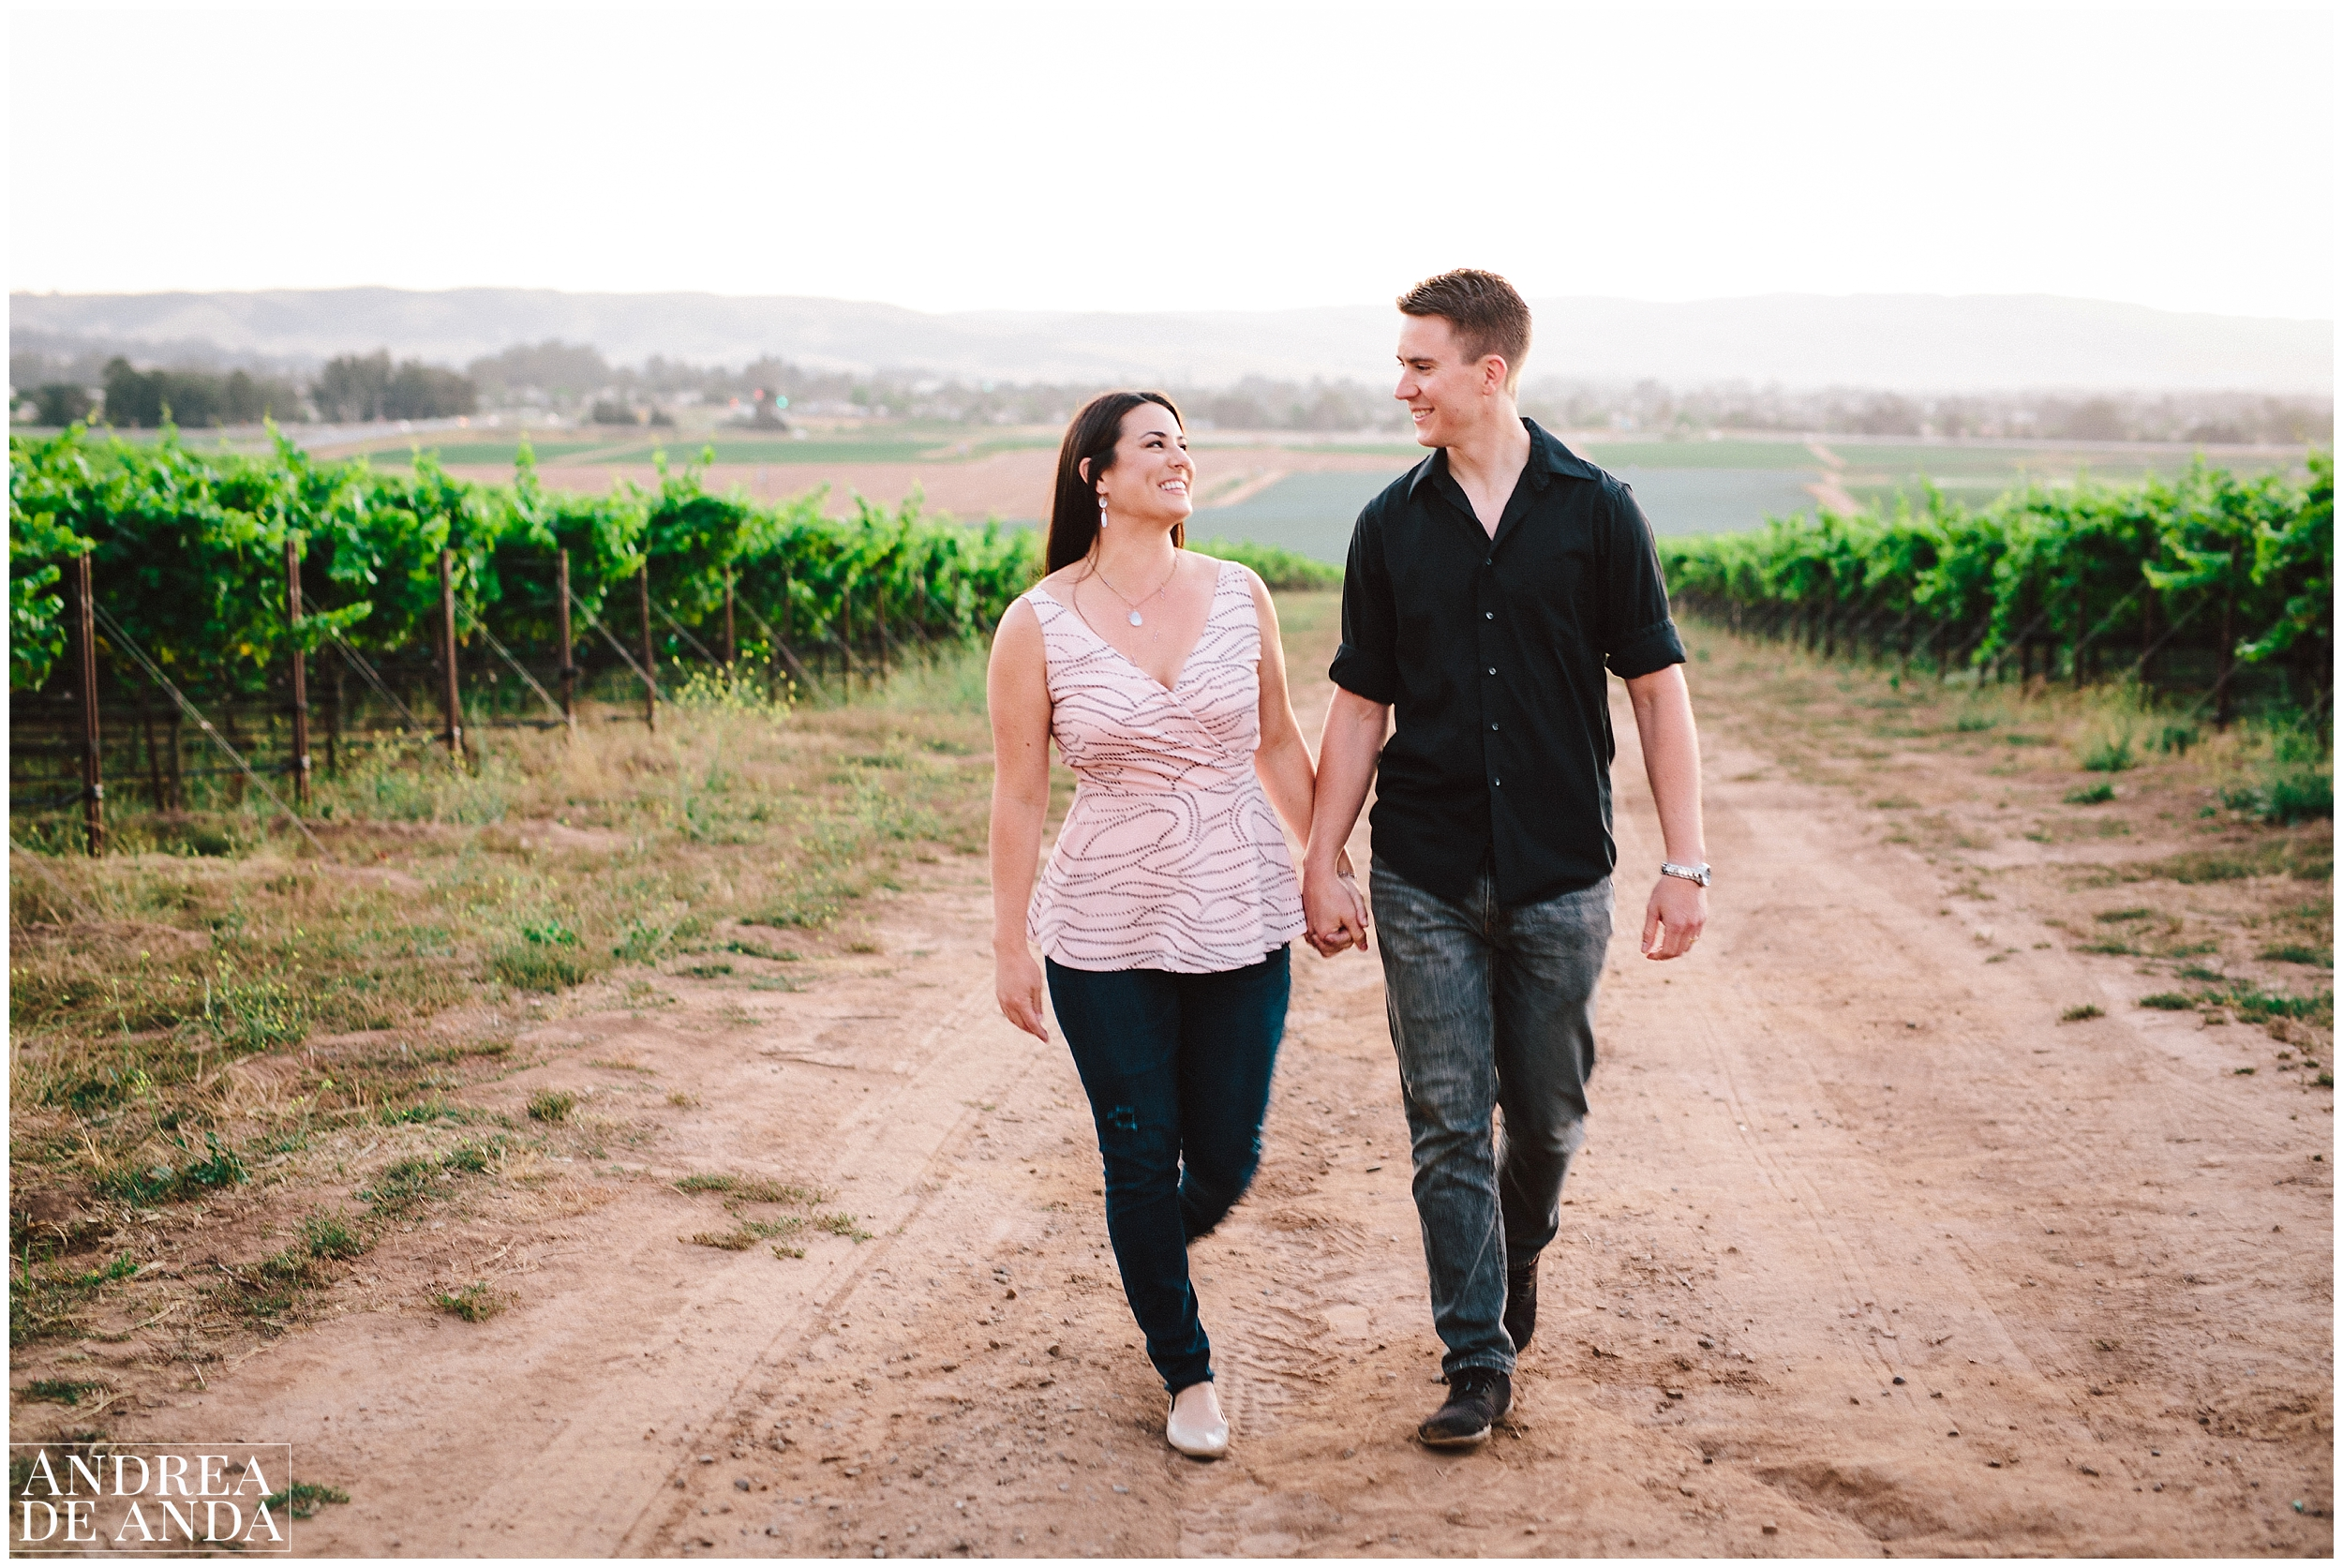 Walking in the vineyard Engagement session Orcutt Hills by Andrea de Anda Photography